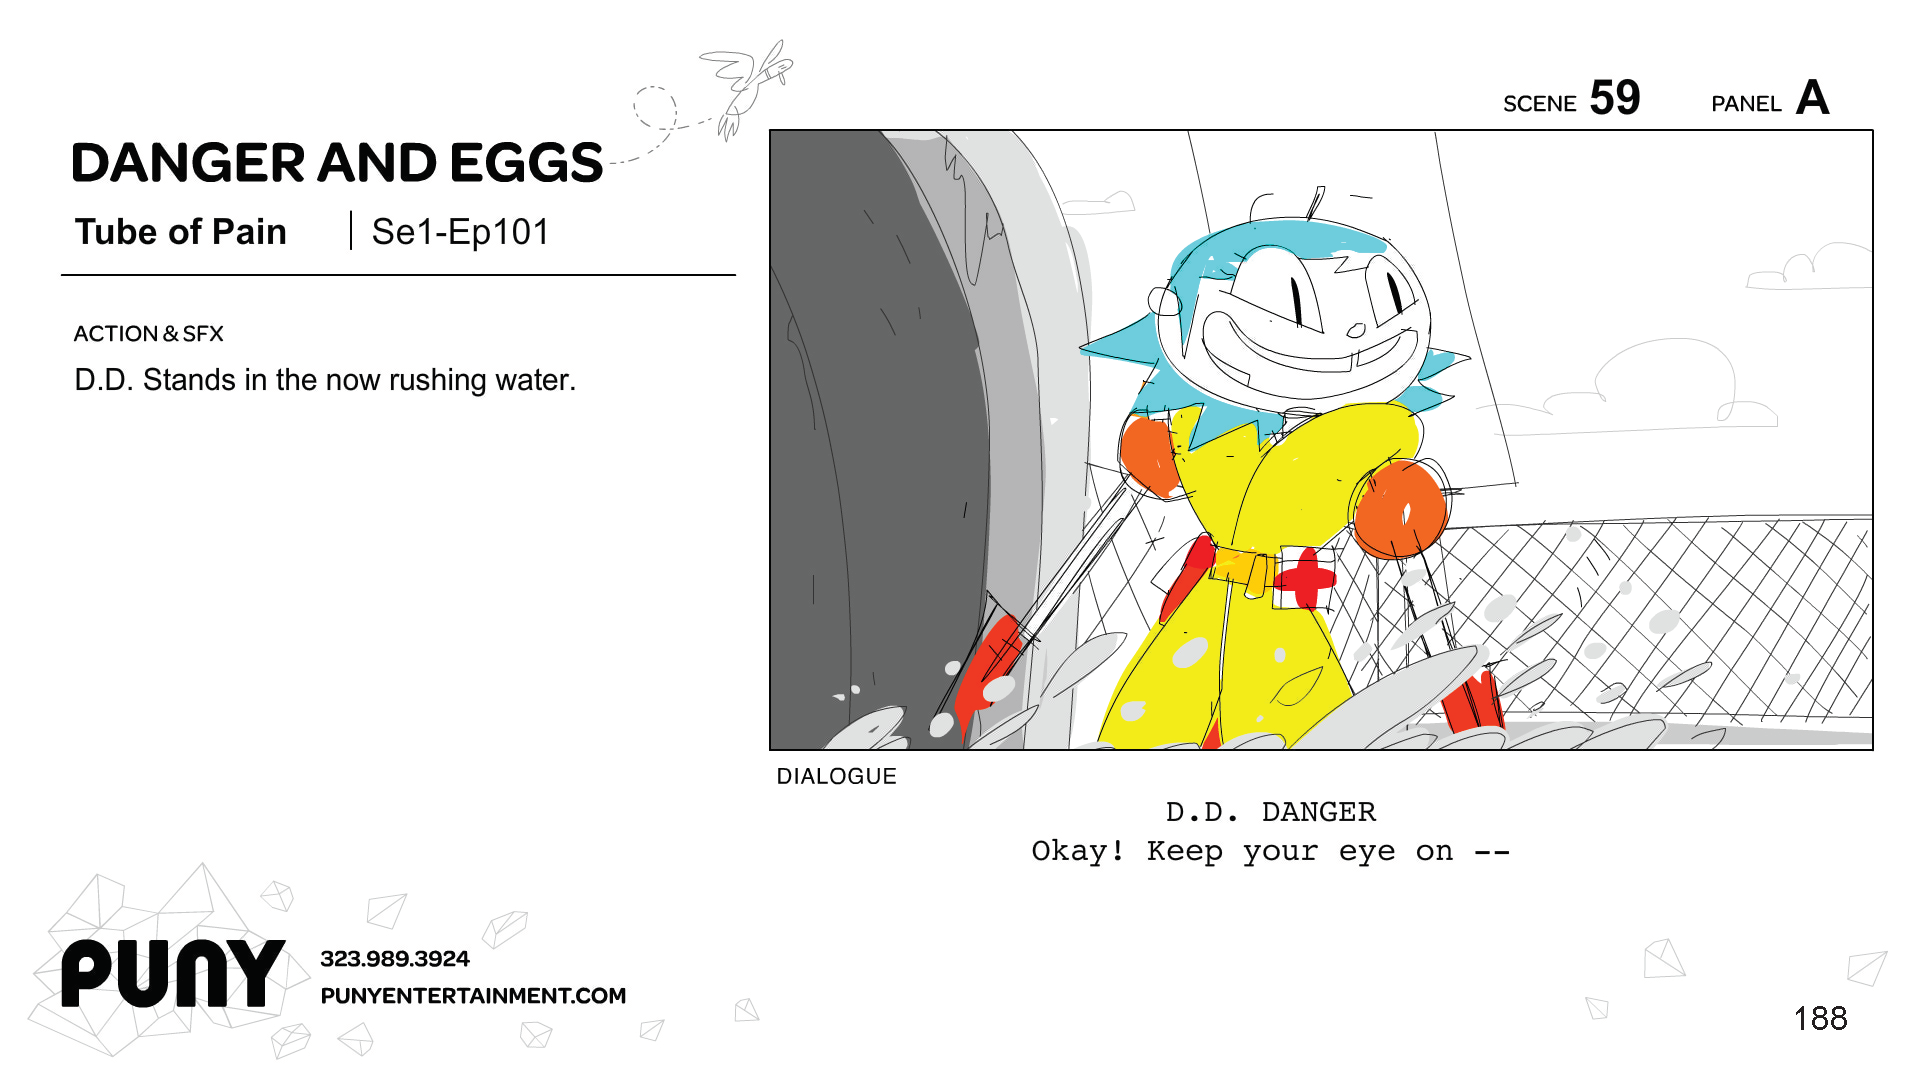 MikeOwens_STORYBOARDS_DangerAndEggs_Page_188.png